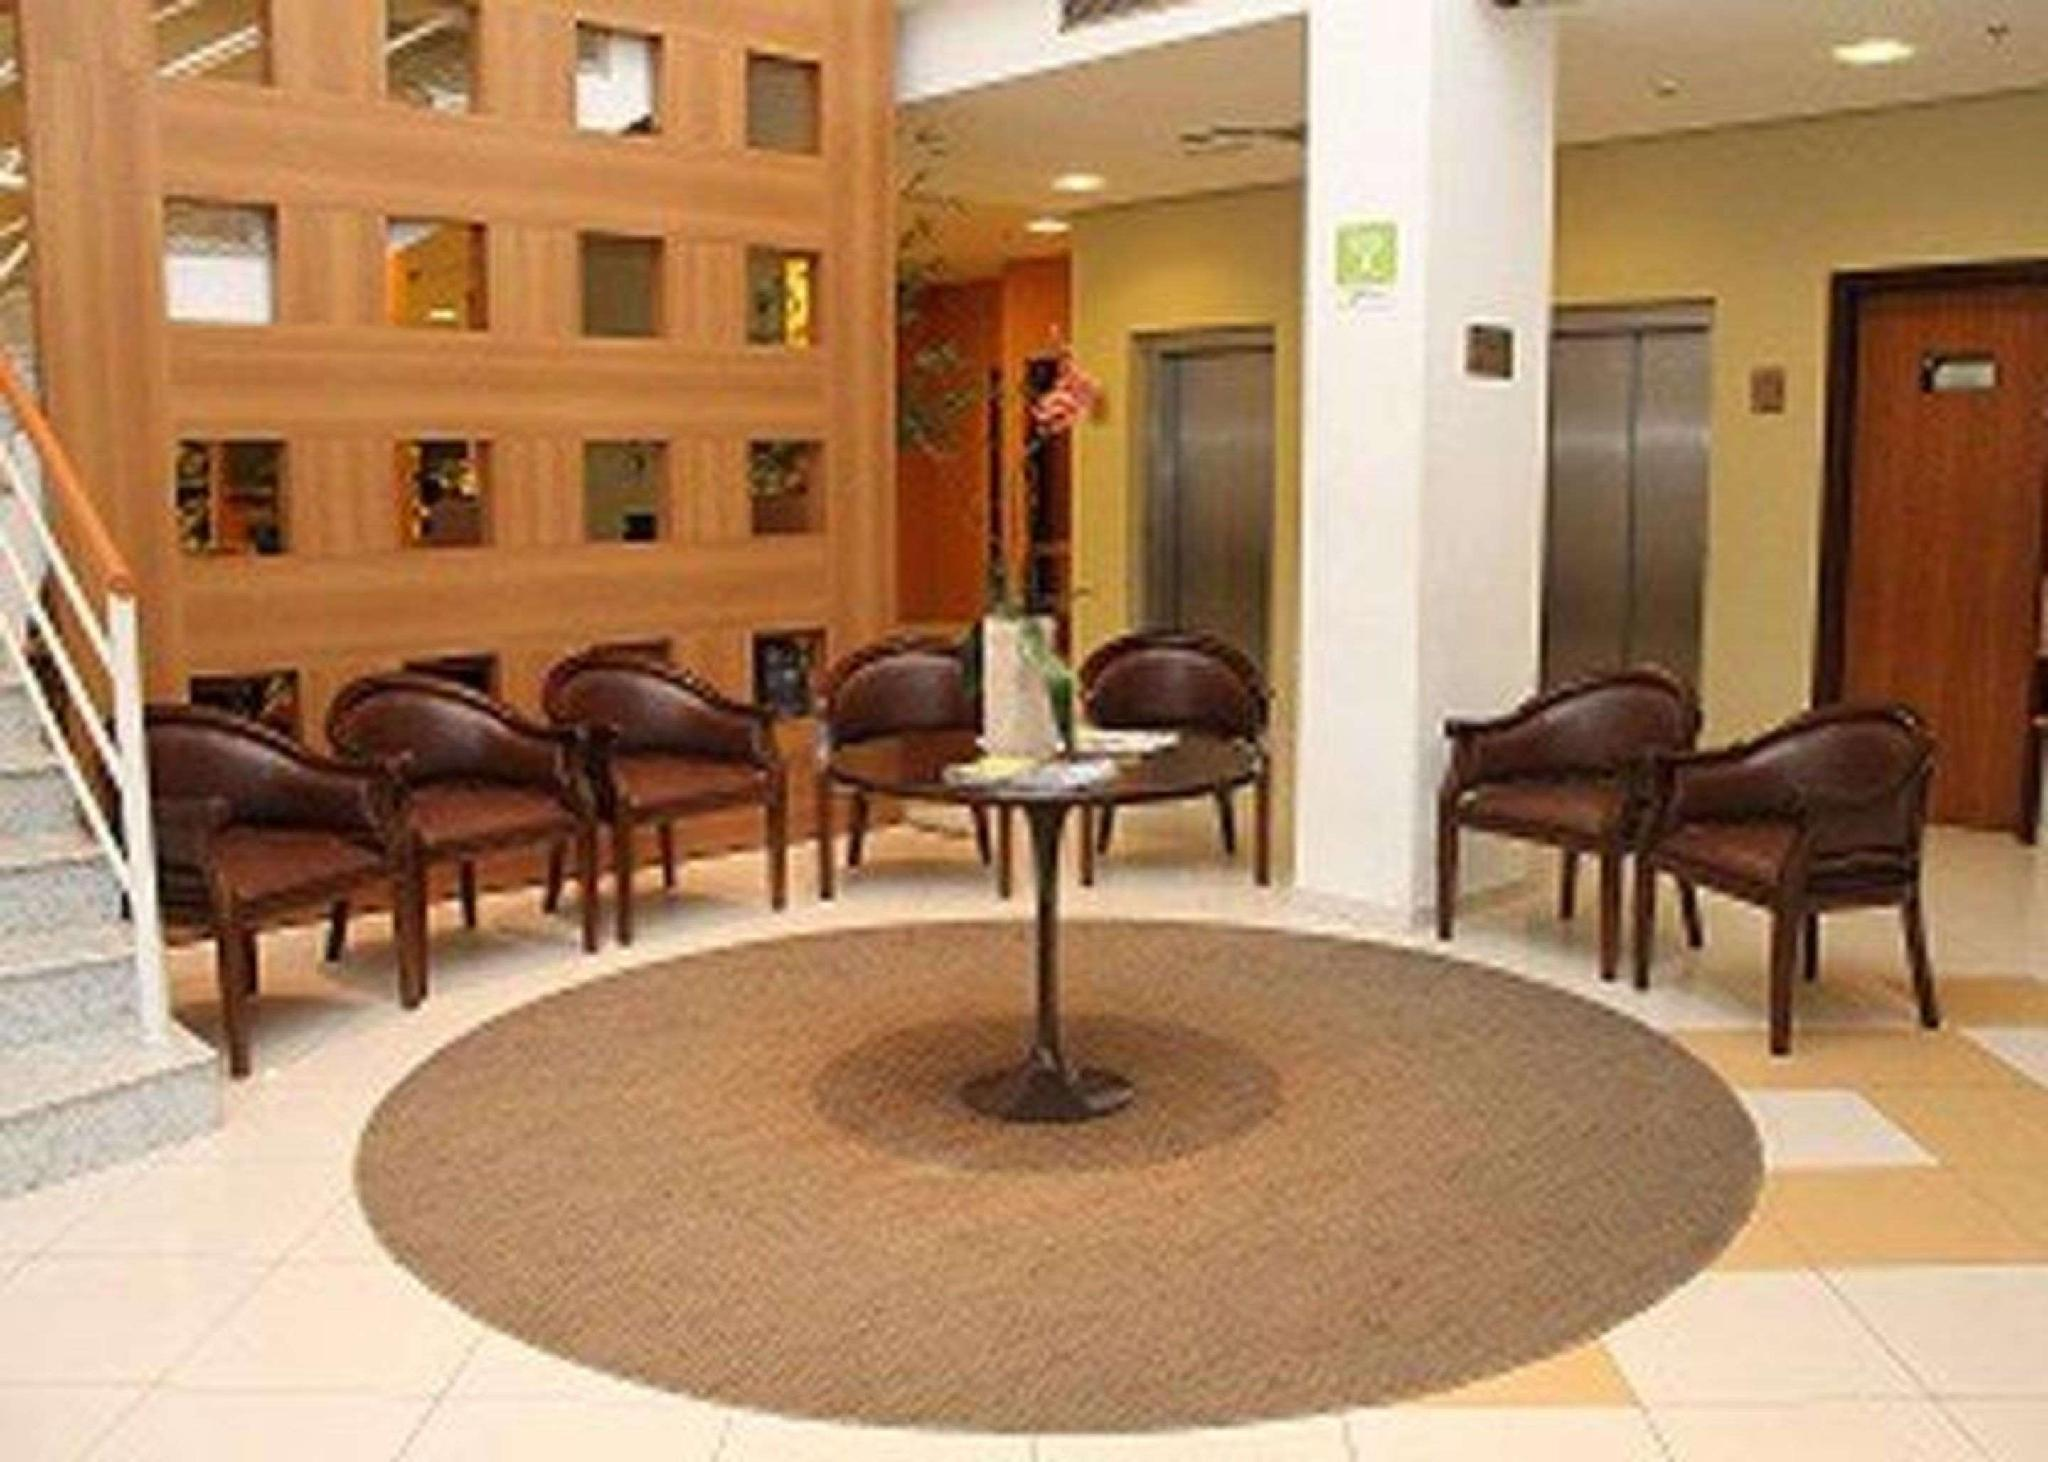 Comfort Hotel Joinville Joinville